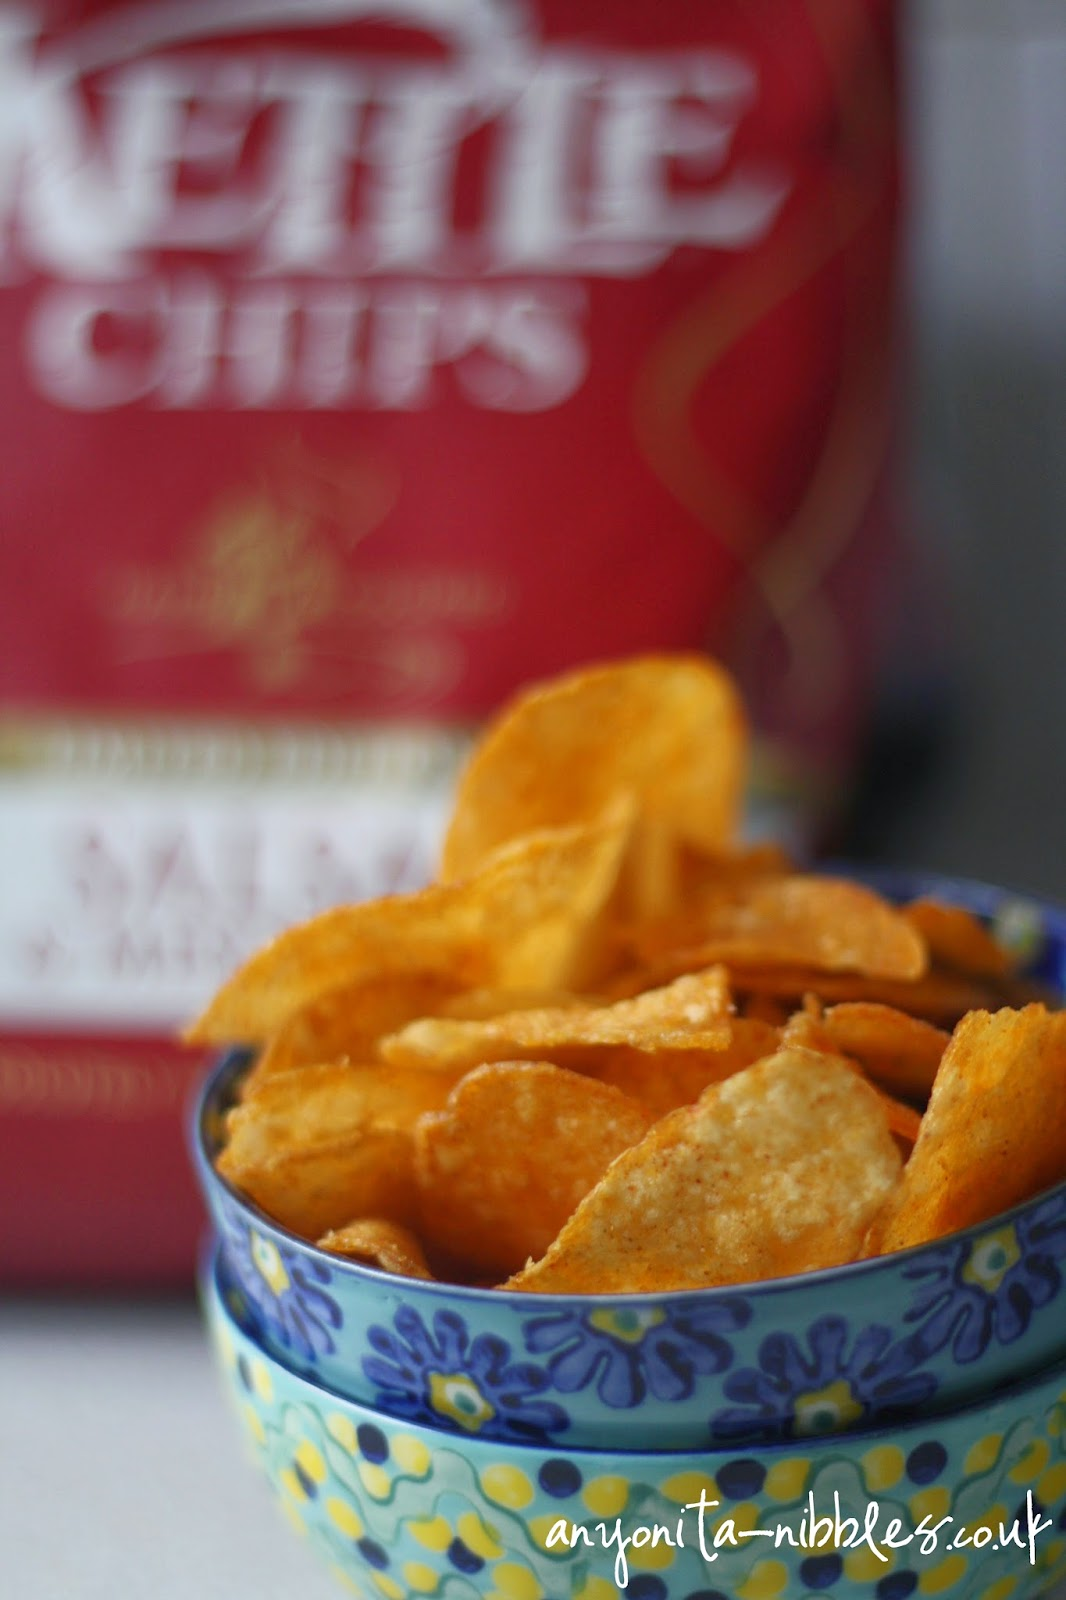 The strong paprika flavour of these Salsa & Mesquite Kettle Chips makes them ideal for Christmas parties from Anyonita-nibbles.co.uk